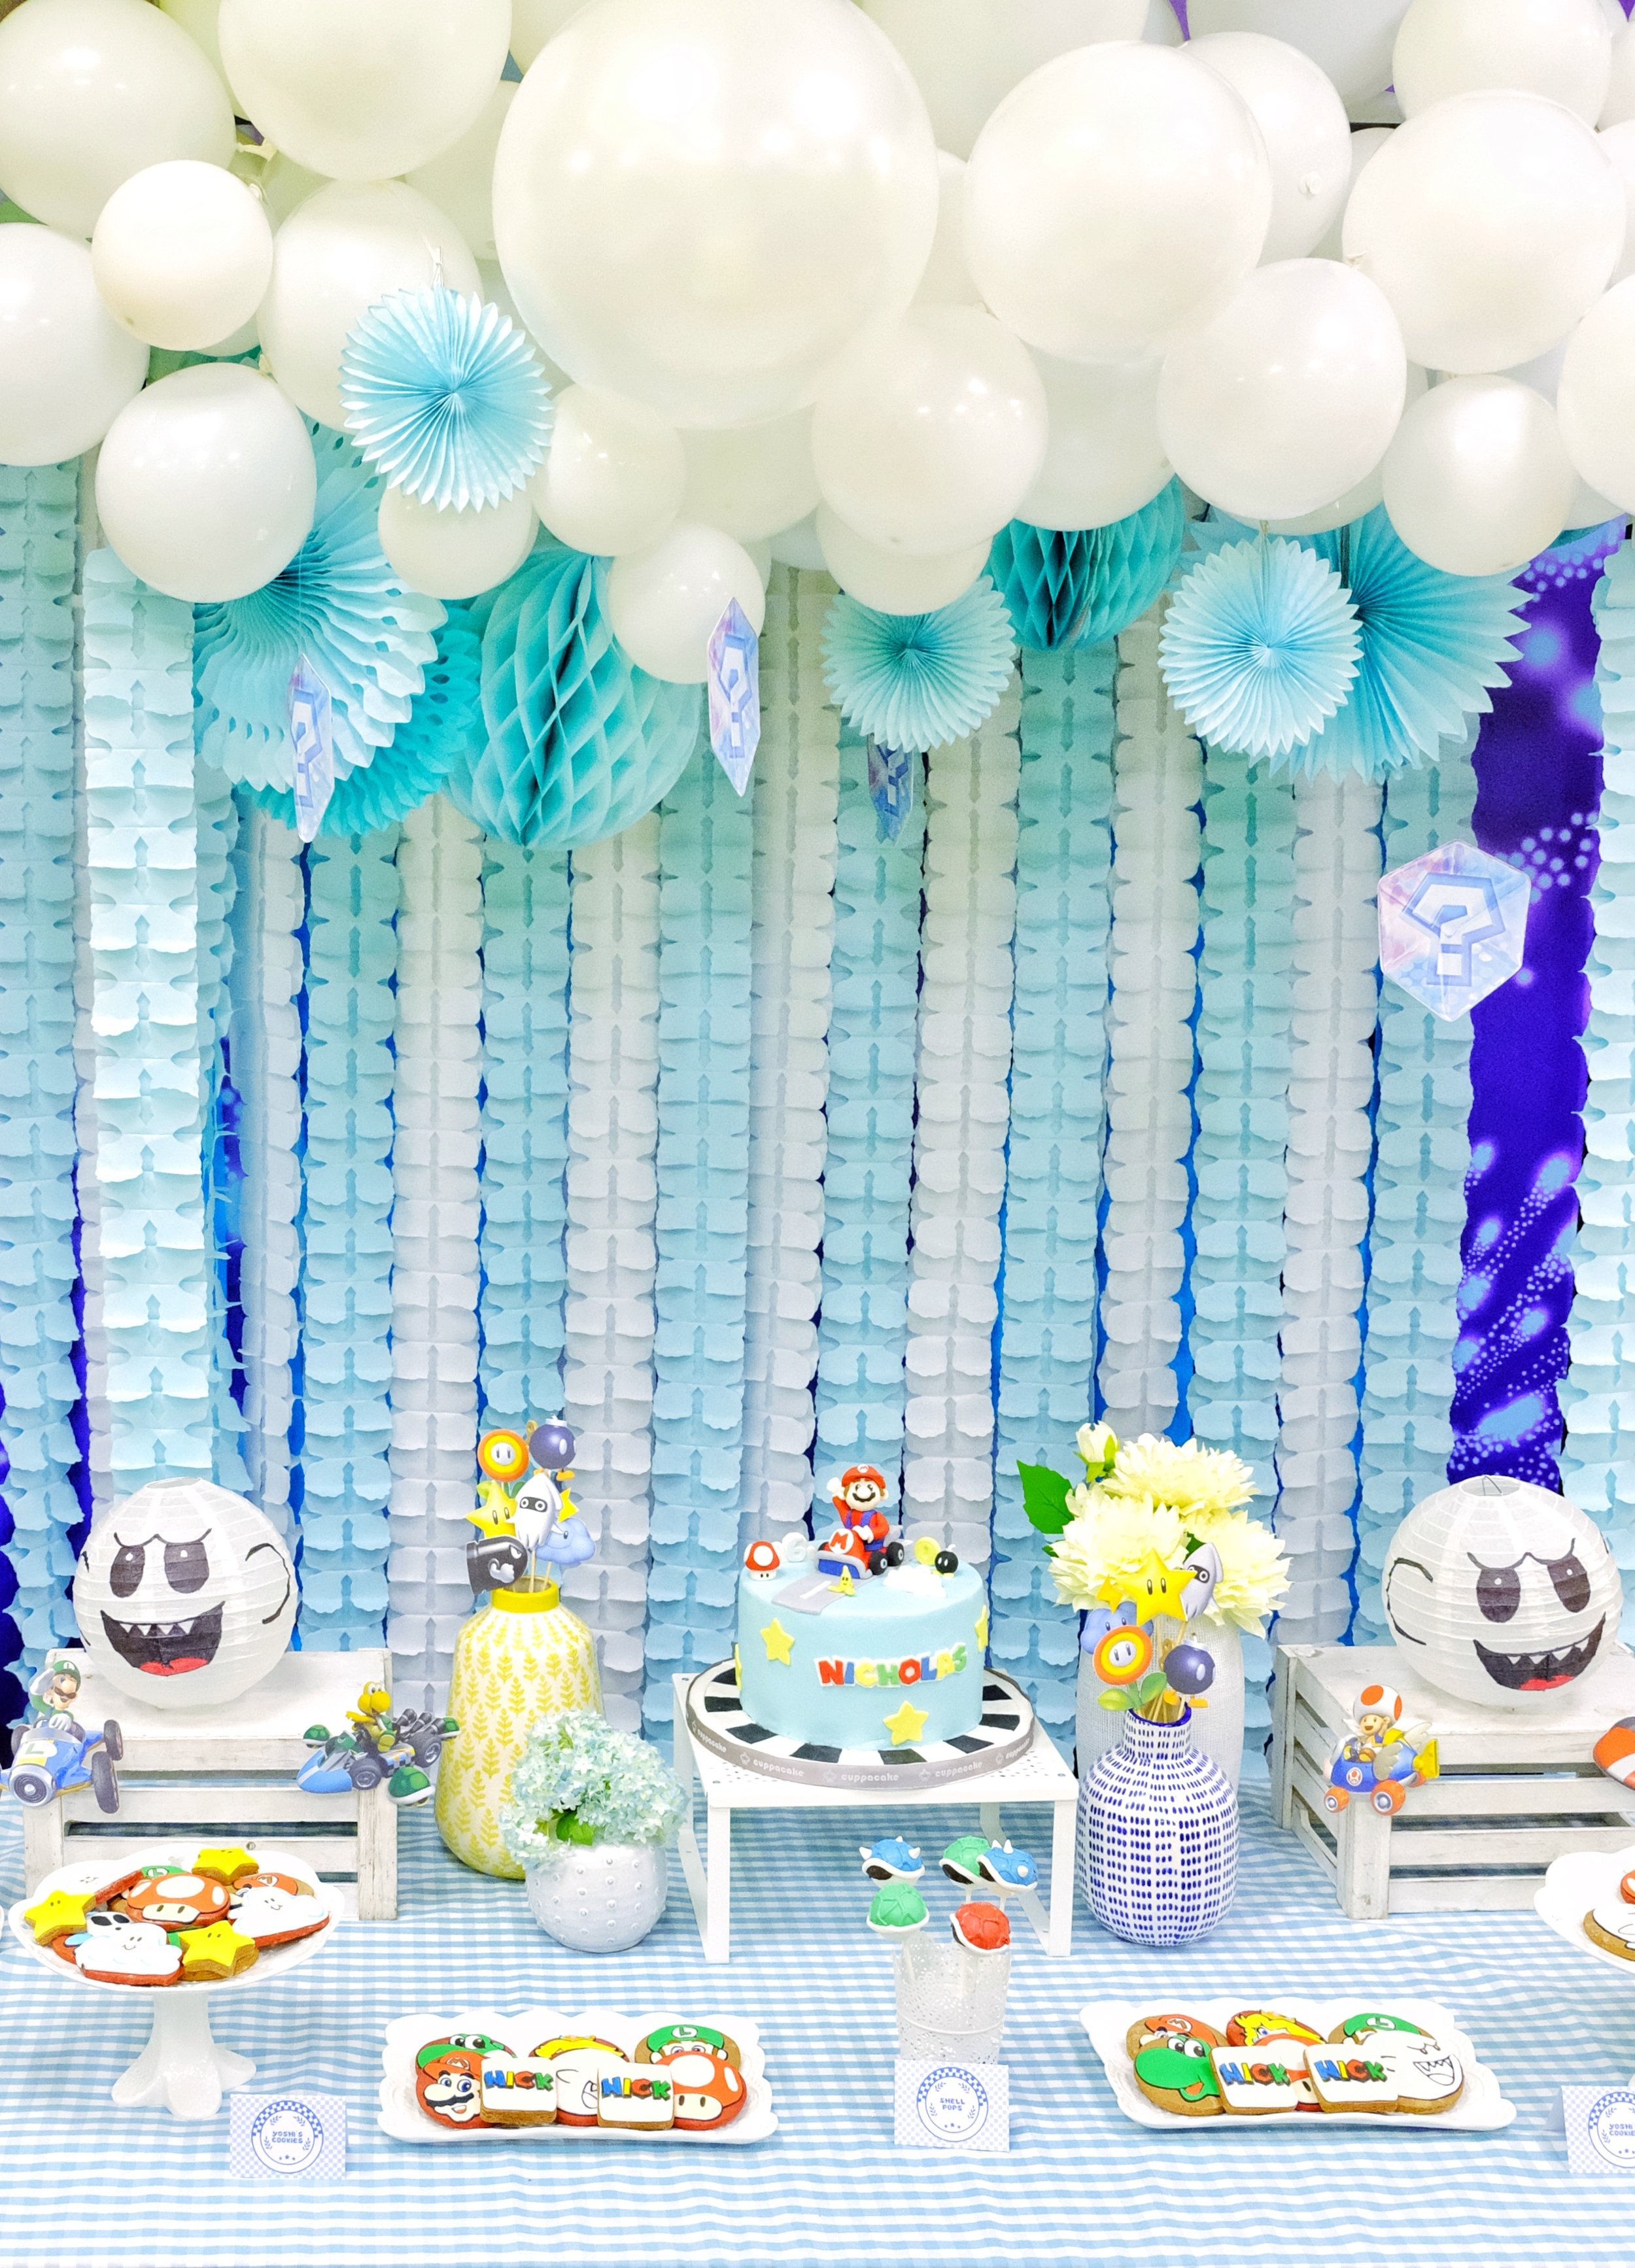 A Modern Mario Kart - We anchored this party on white and sky blue to make it more modern and seamless, while keeping the bursts of colors alive with the die cut characters, cookies and accents. We wanted this party to appeal to the young and young at heart.